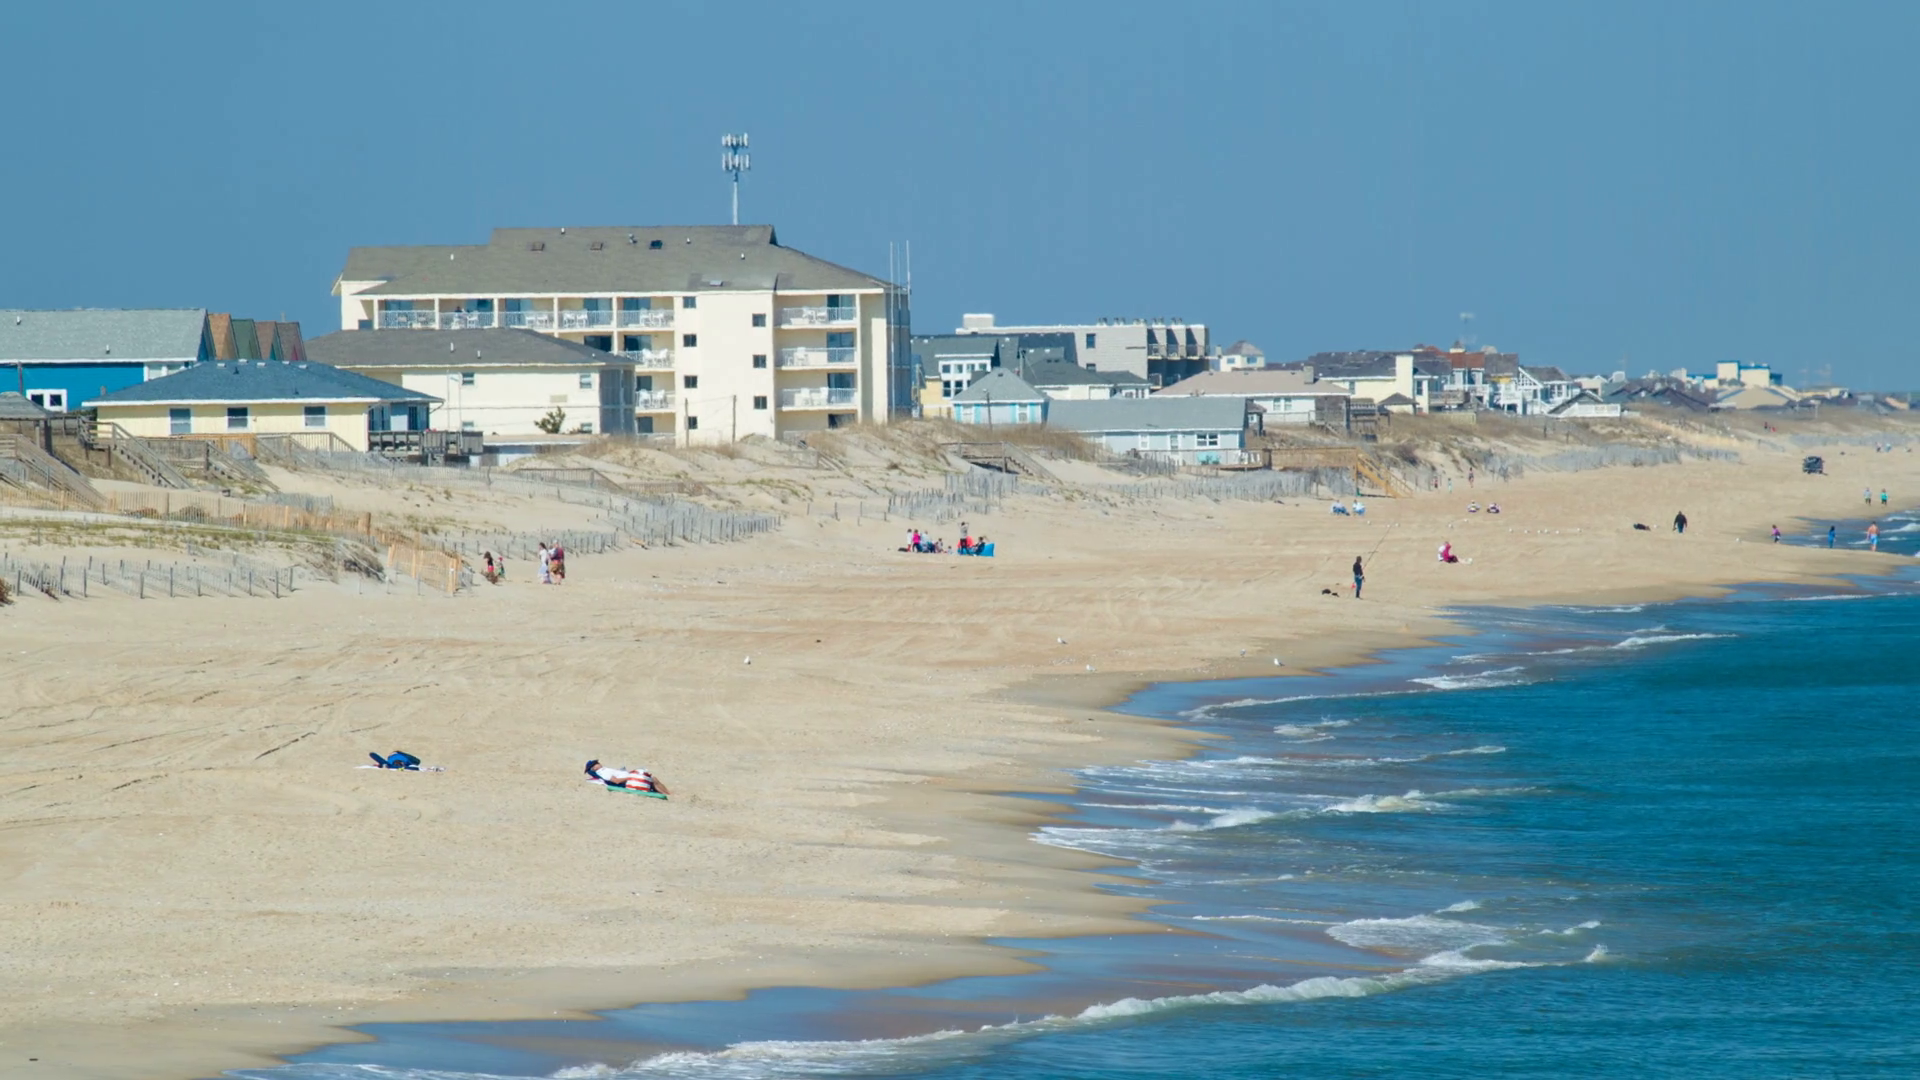 Nags Head Beach on the Outer Banks of North Carolina with 1920x1080